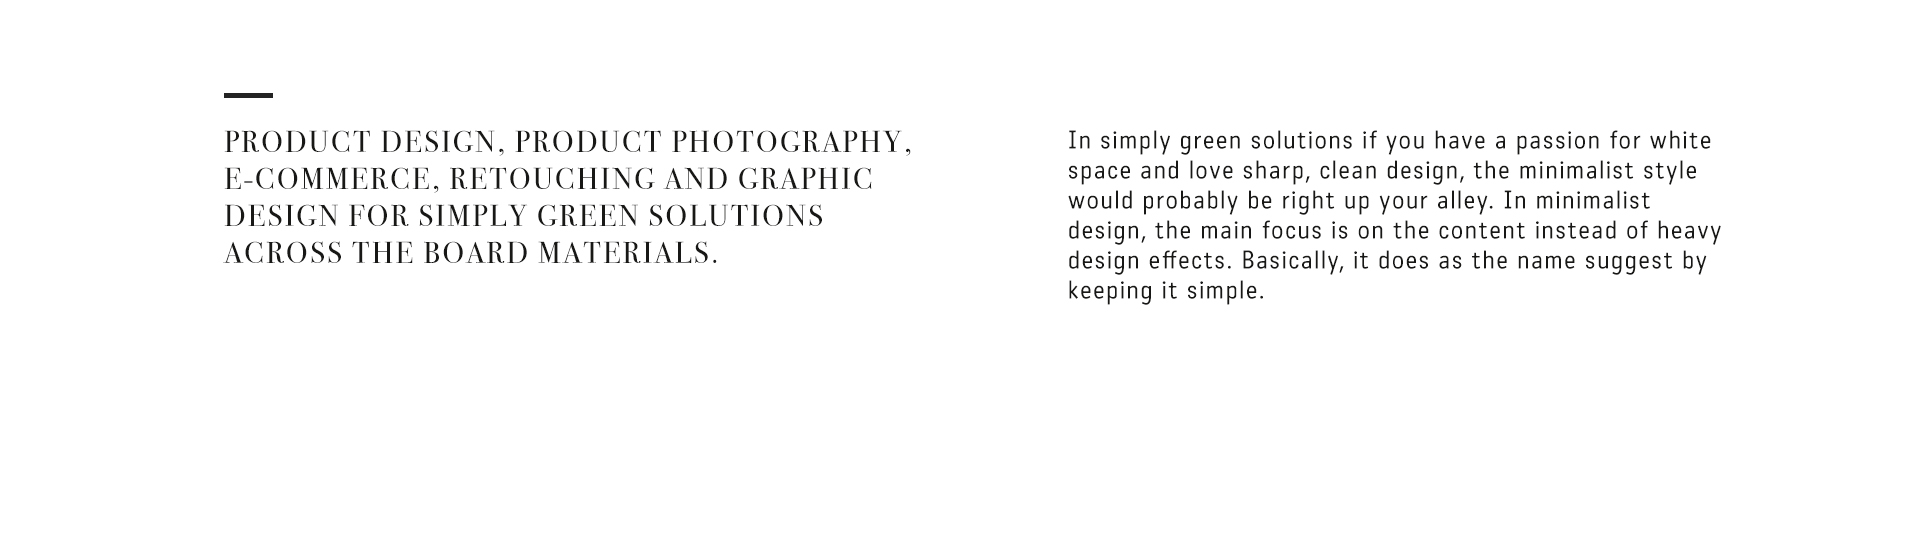 Product Design Photography